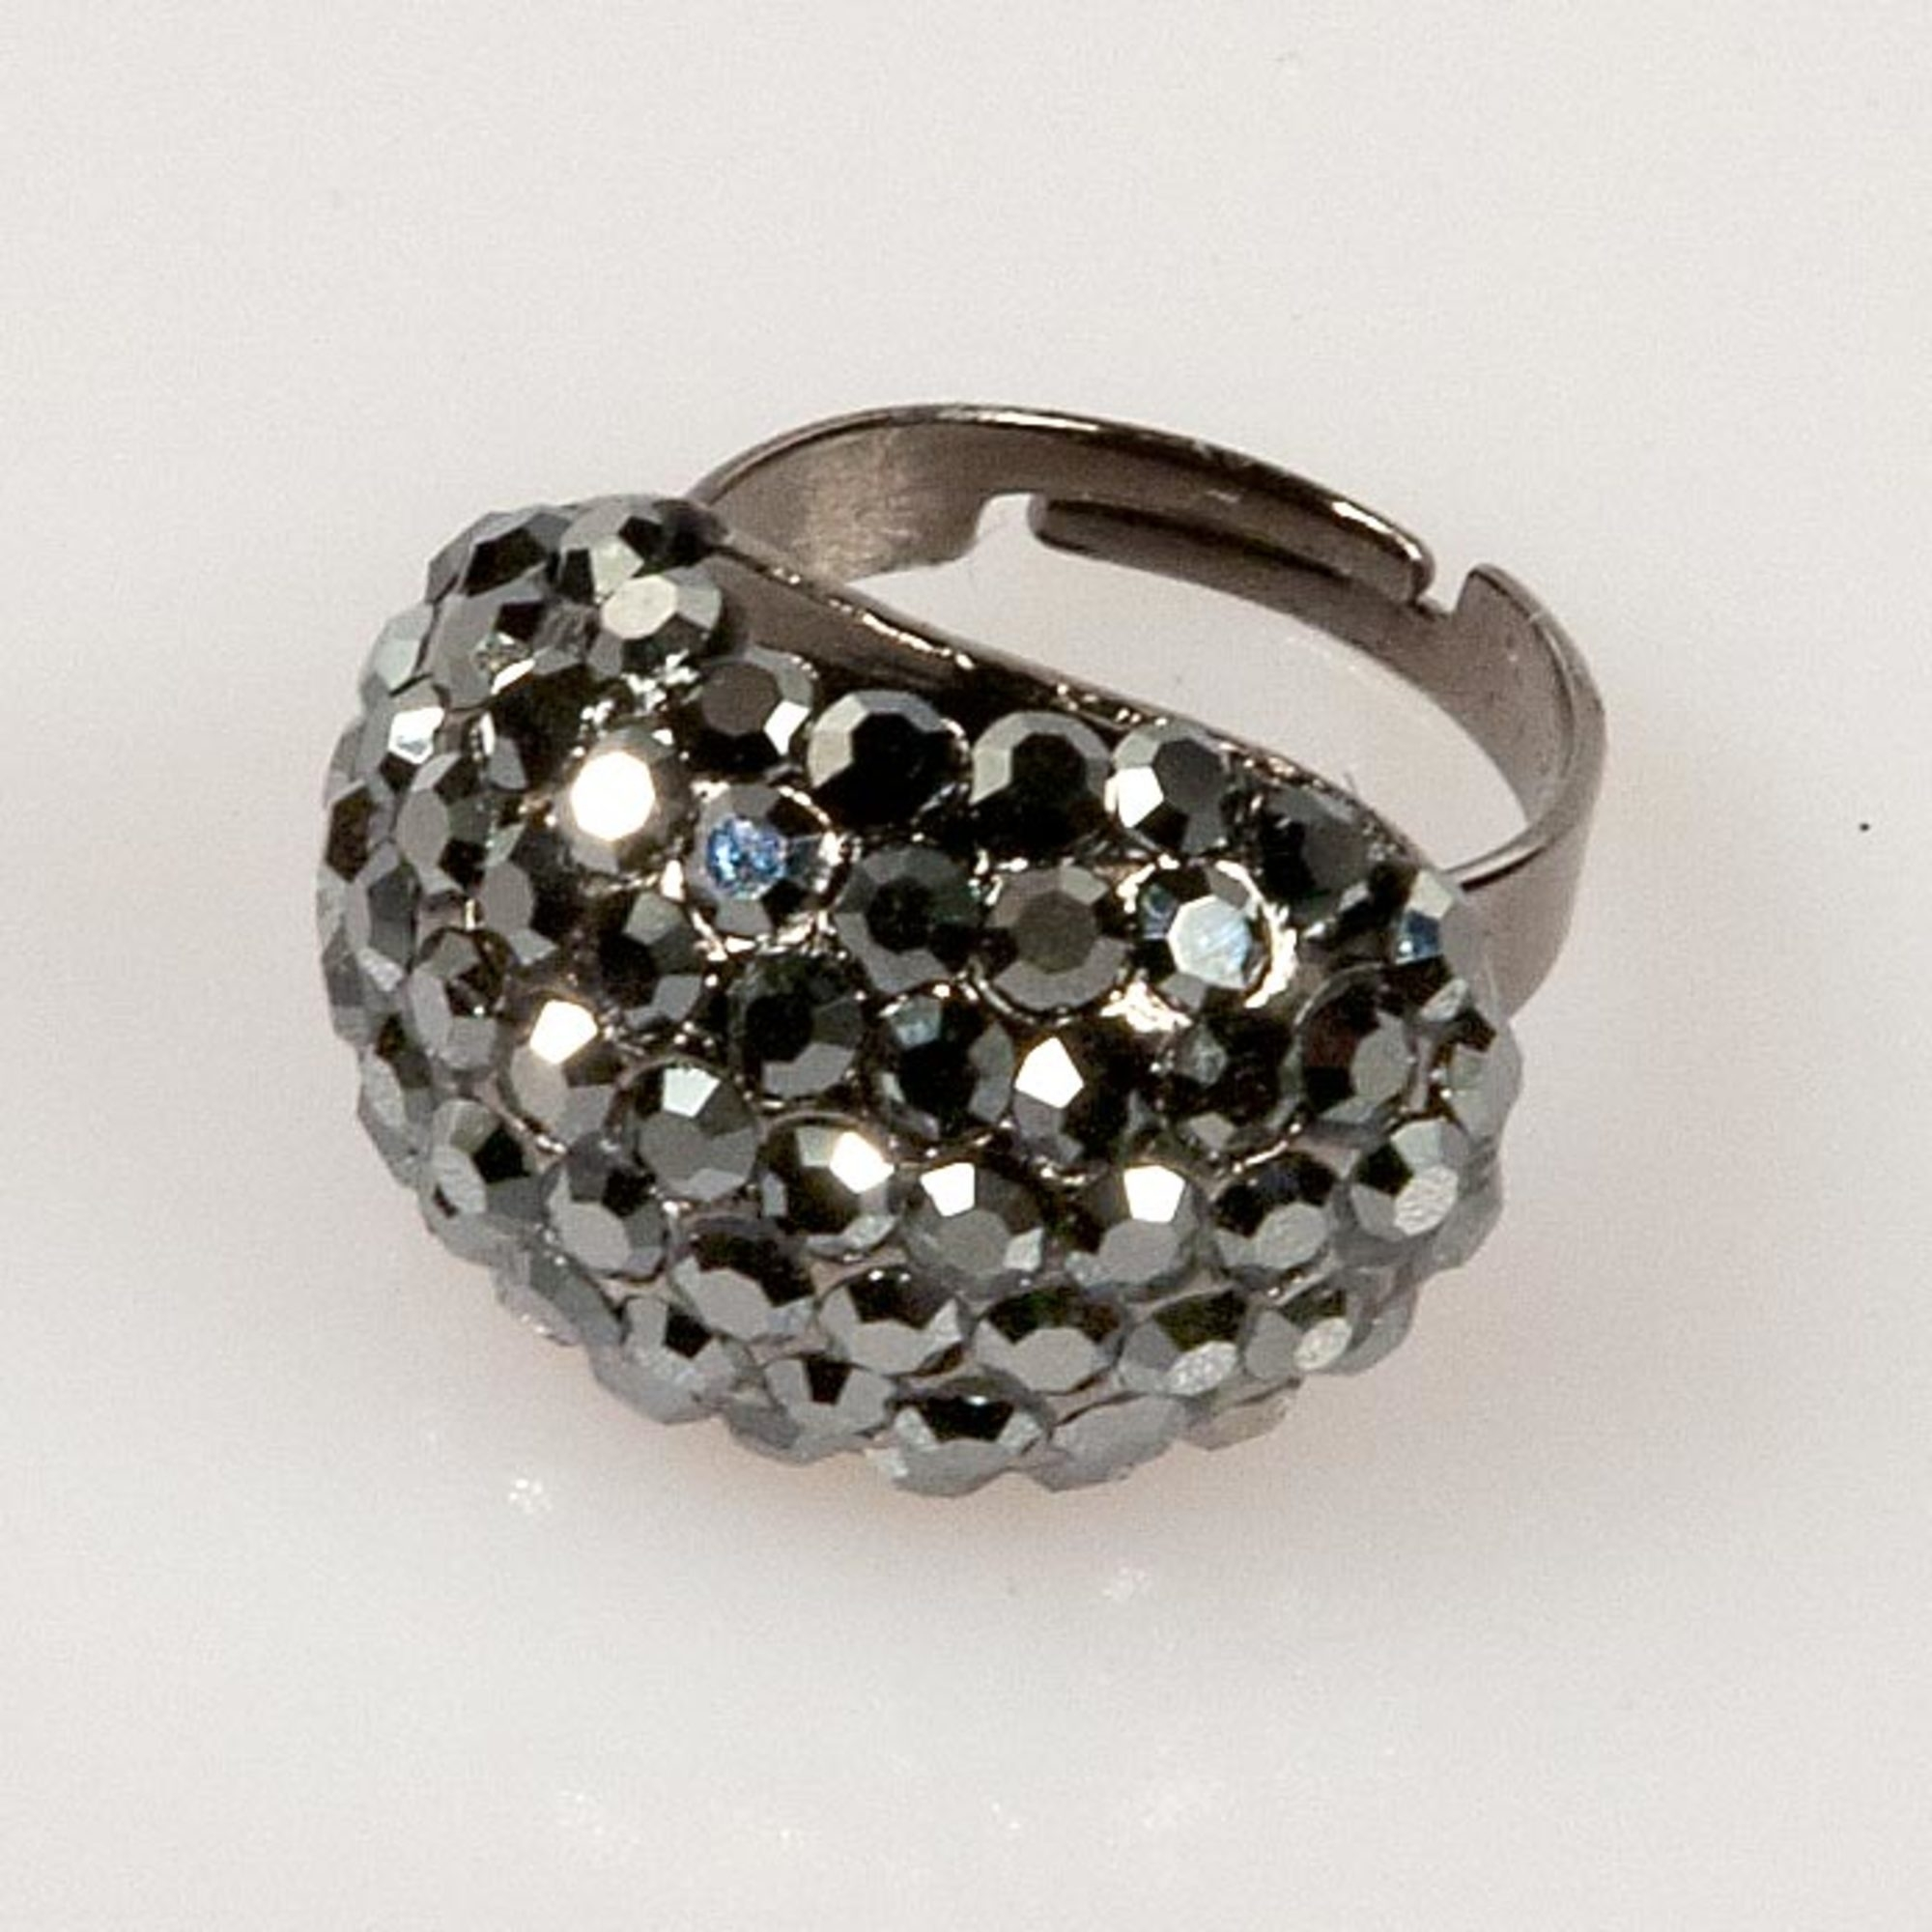 Oval Shape Ring - Black